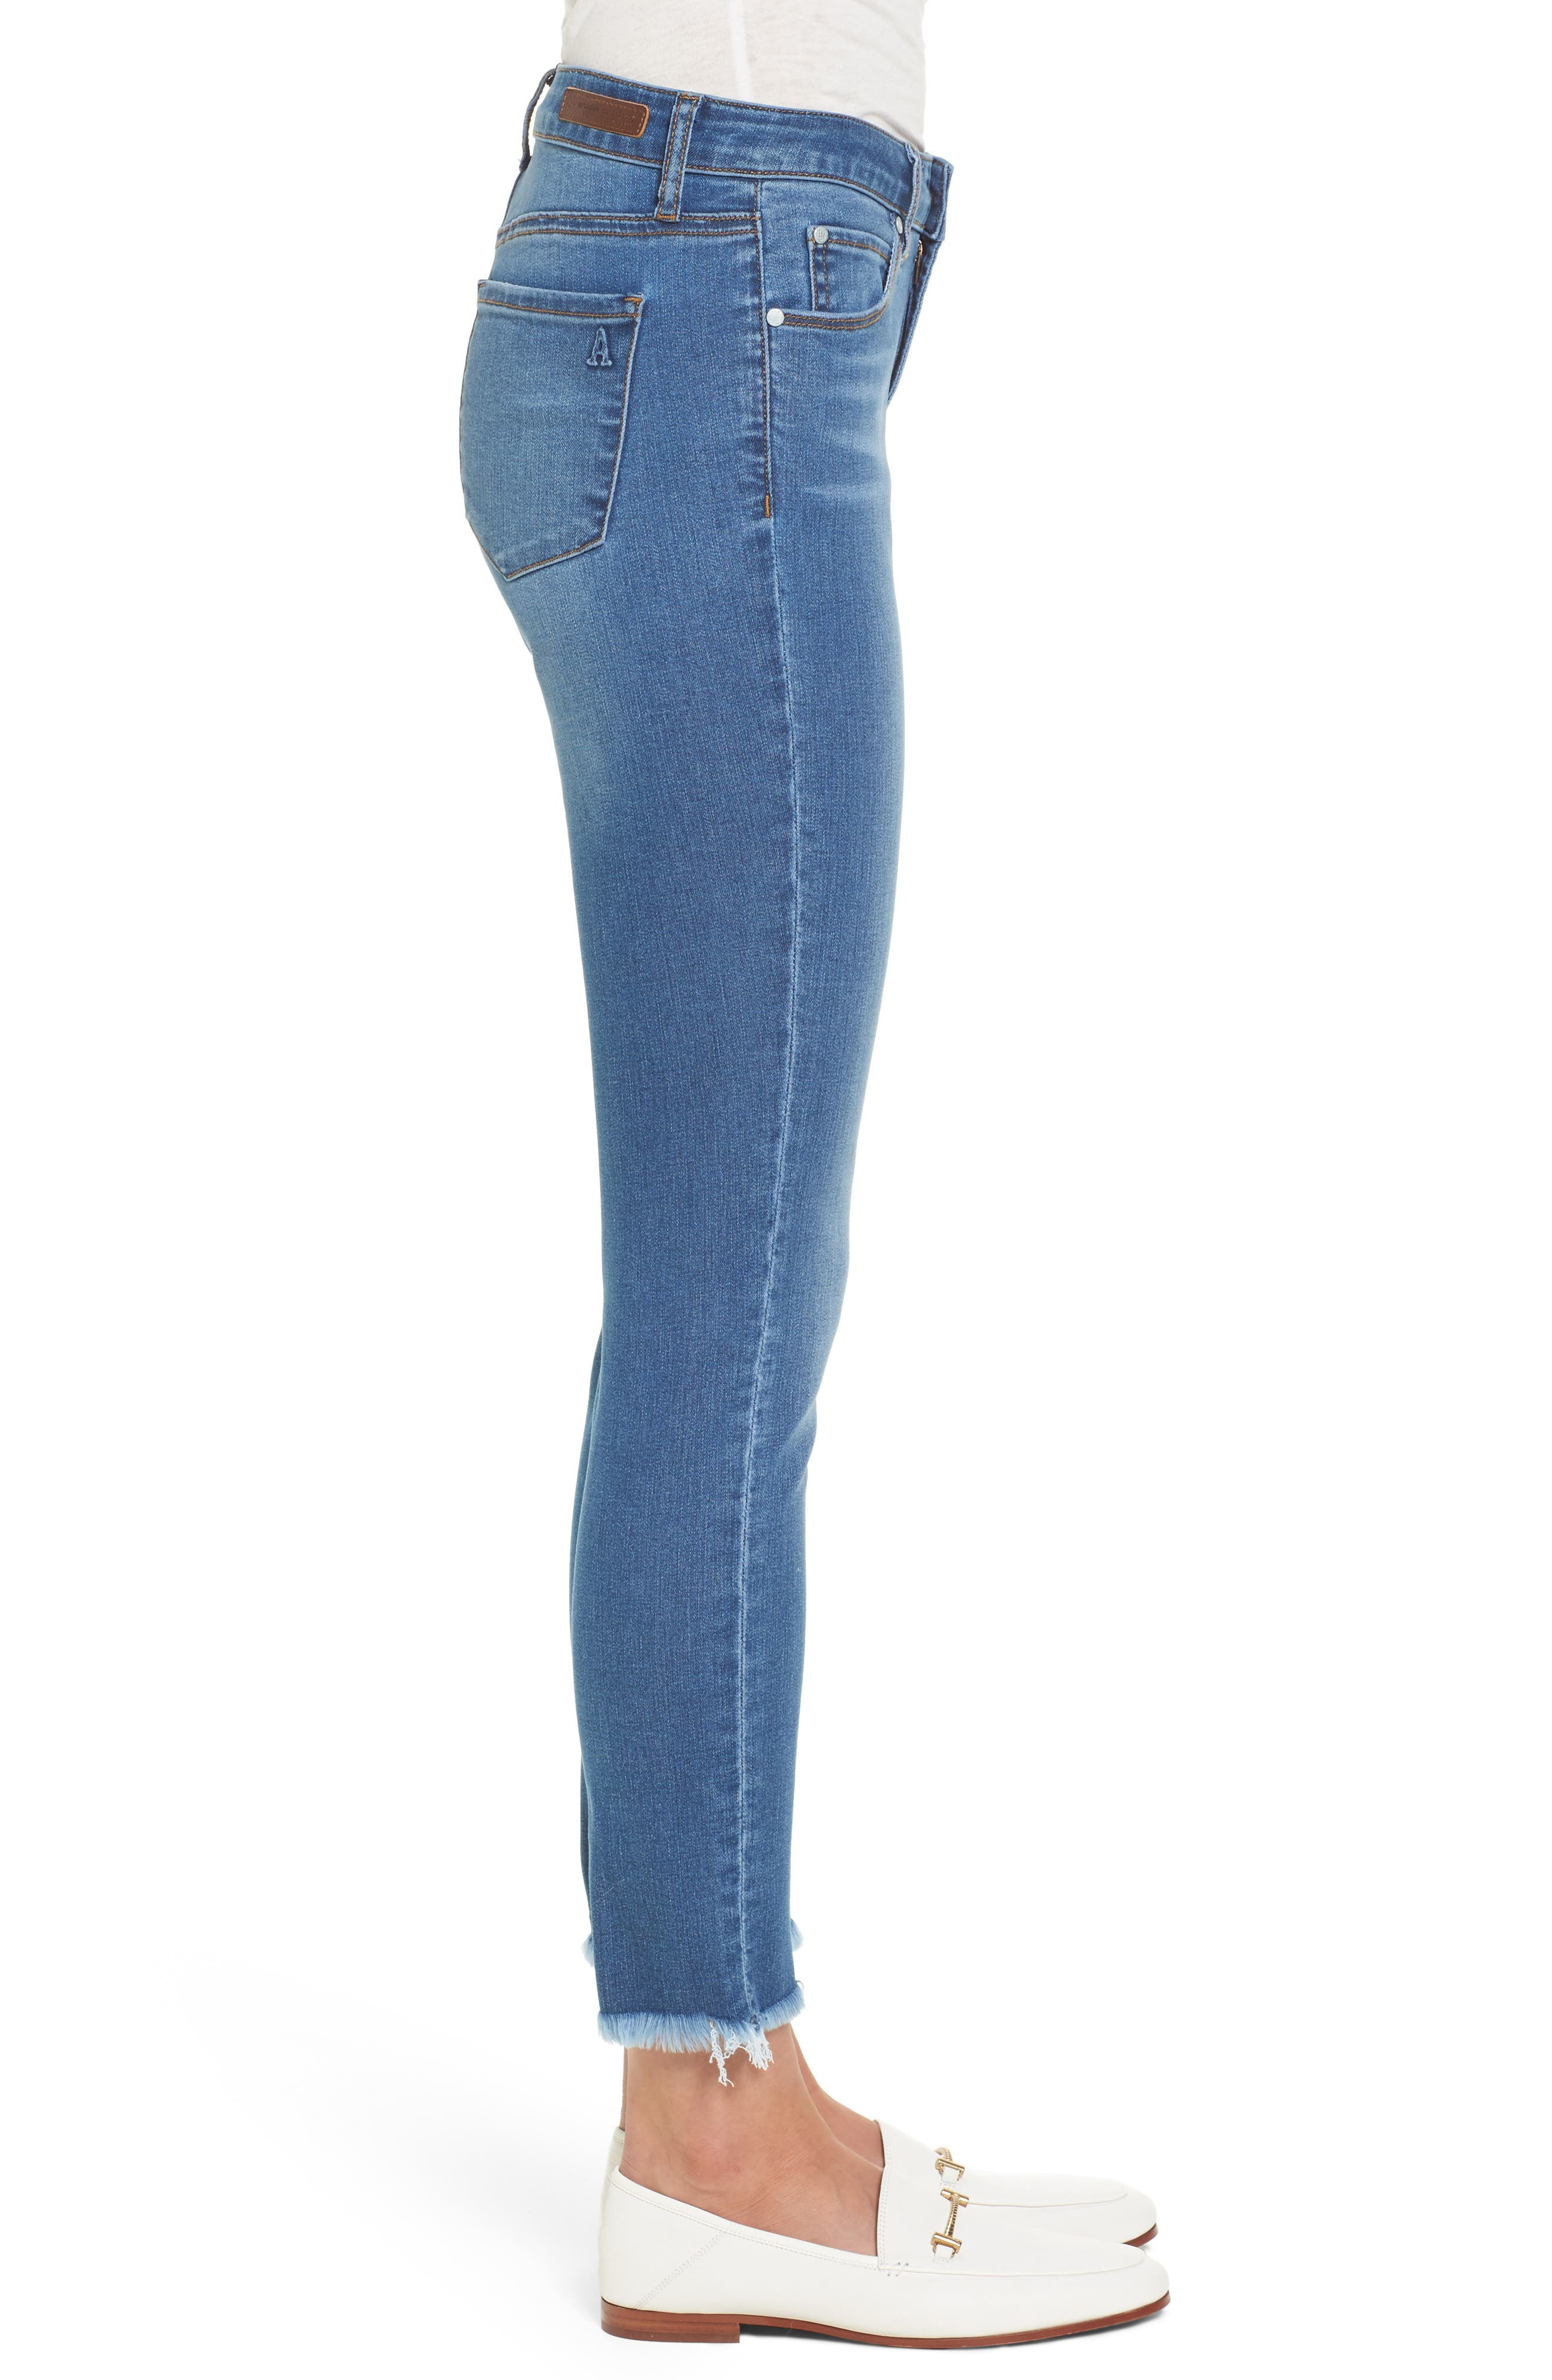 Carly Ankle Skinny Jeans,                             Alternate thumbnail 3, color,                             400